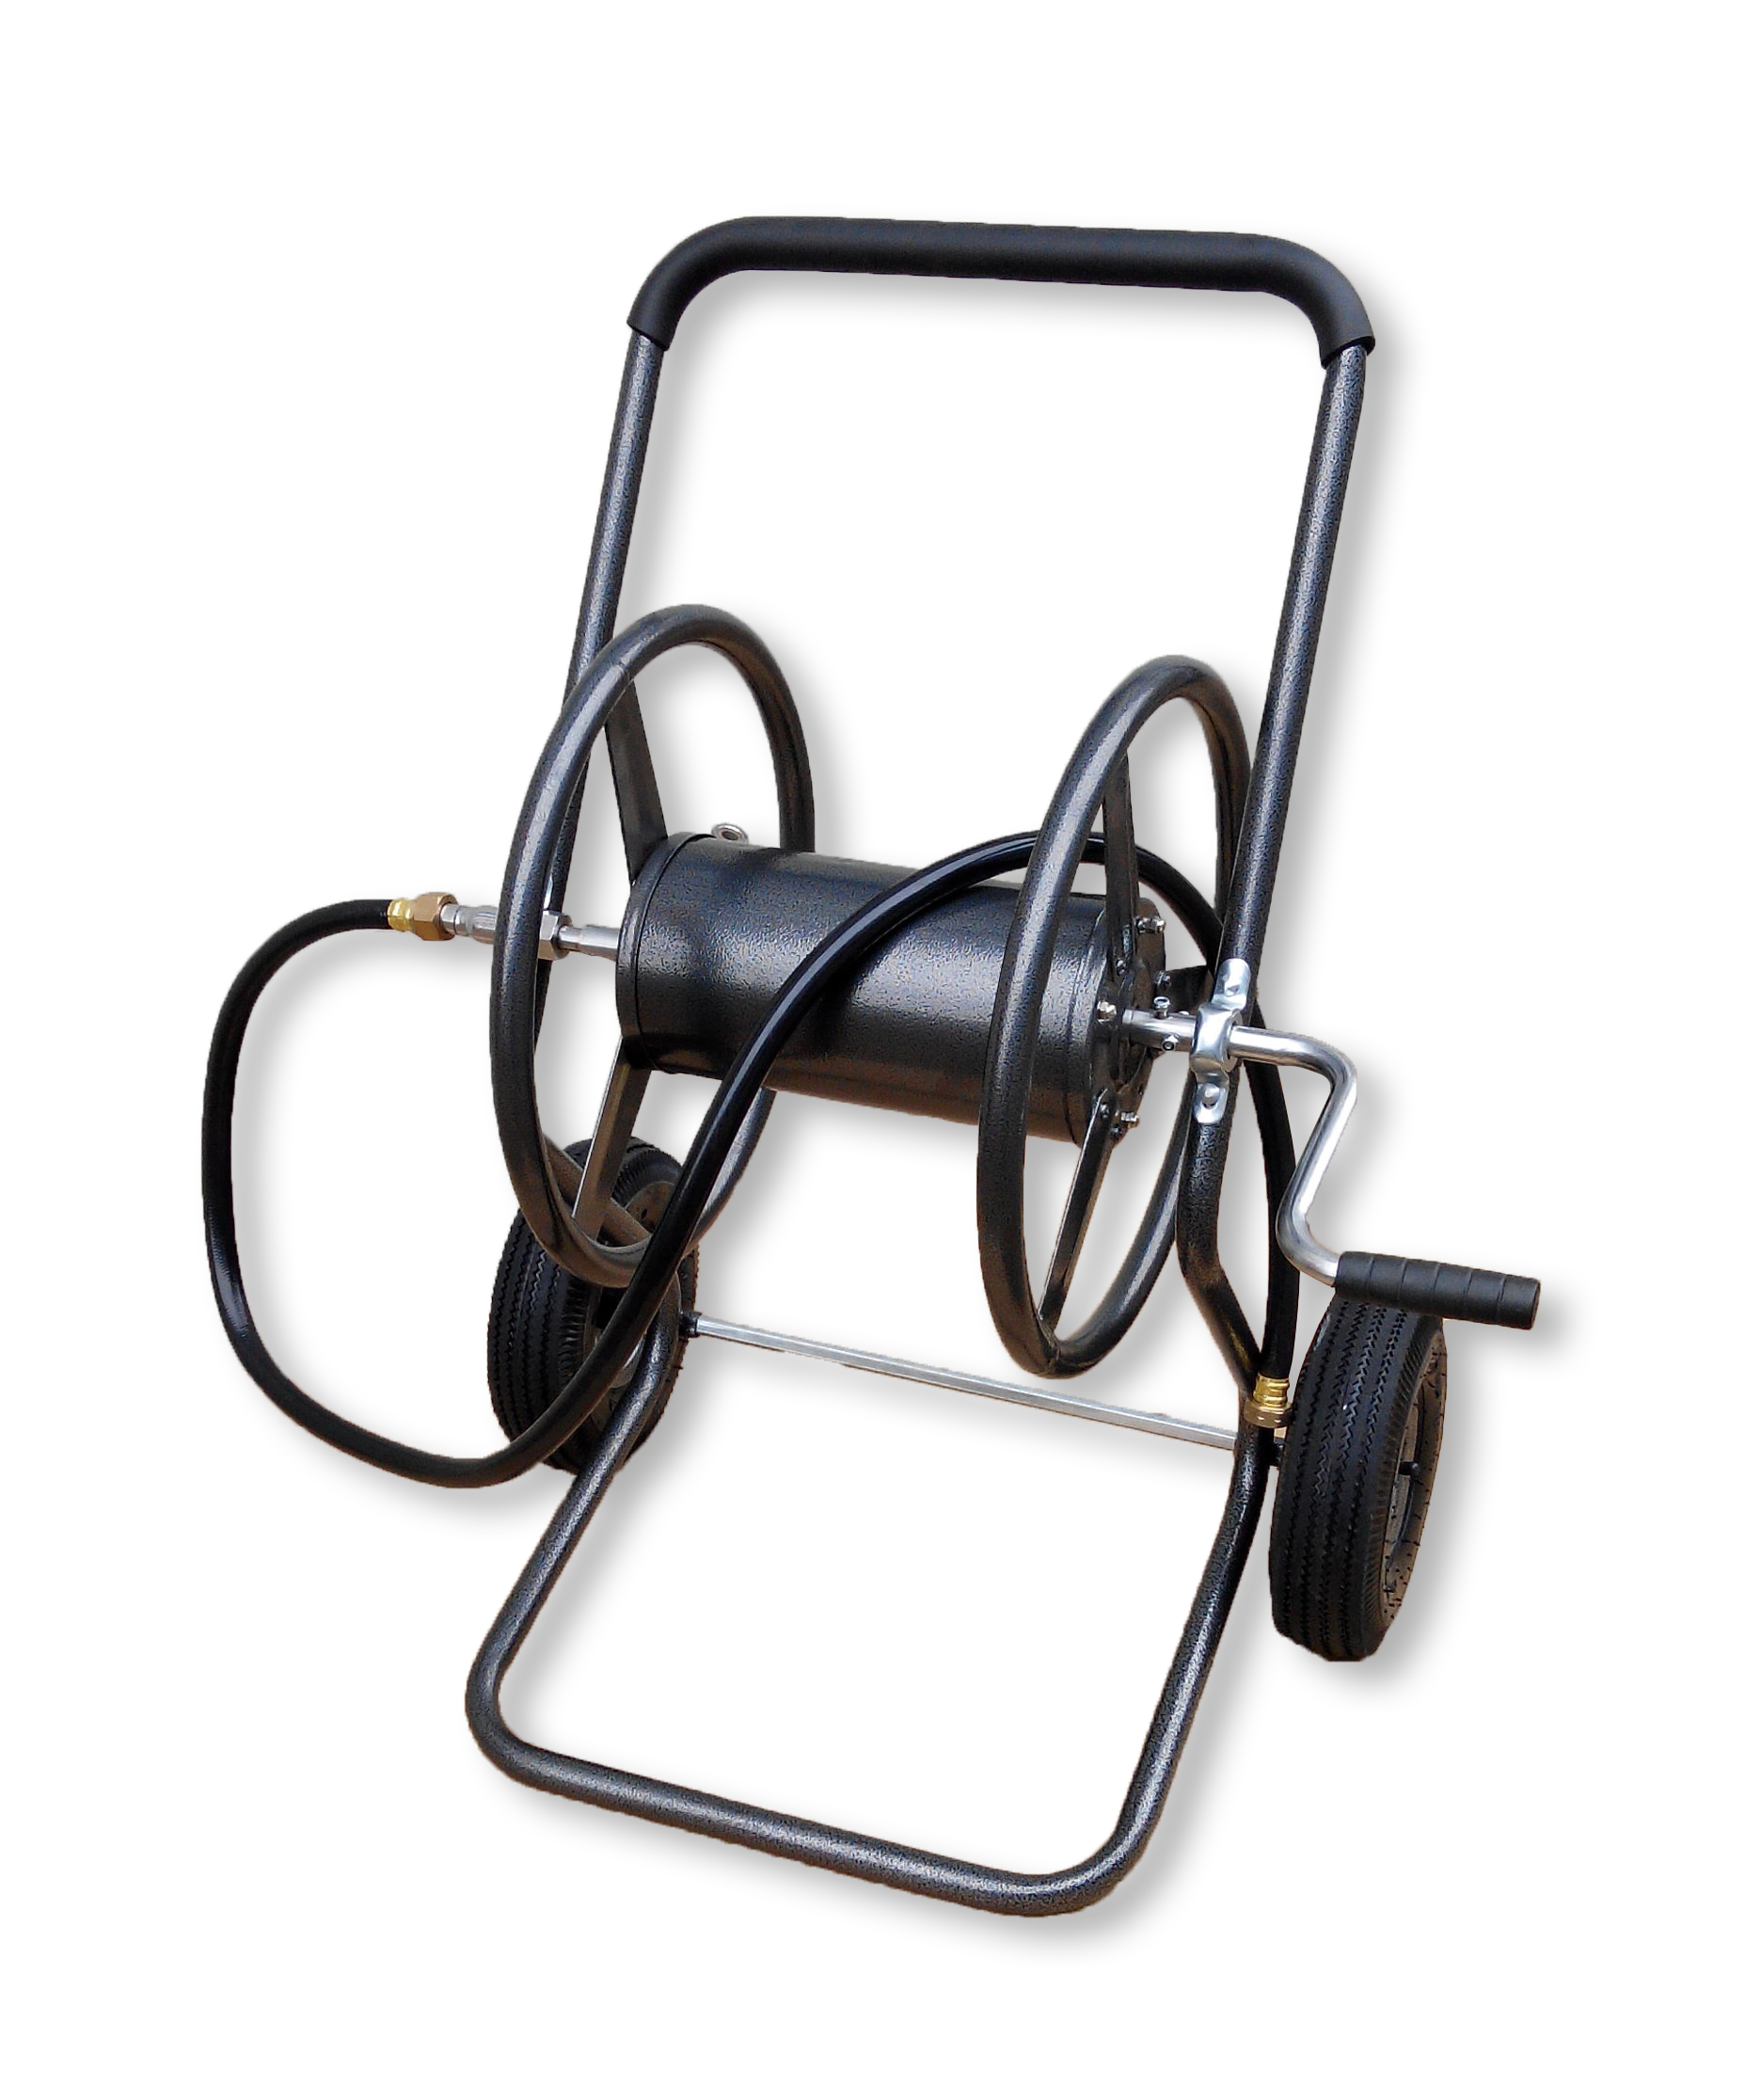 Two Wheel Hose Reel Cart with Leader Hose by Backyard Expressions